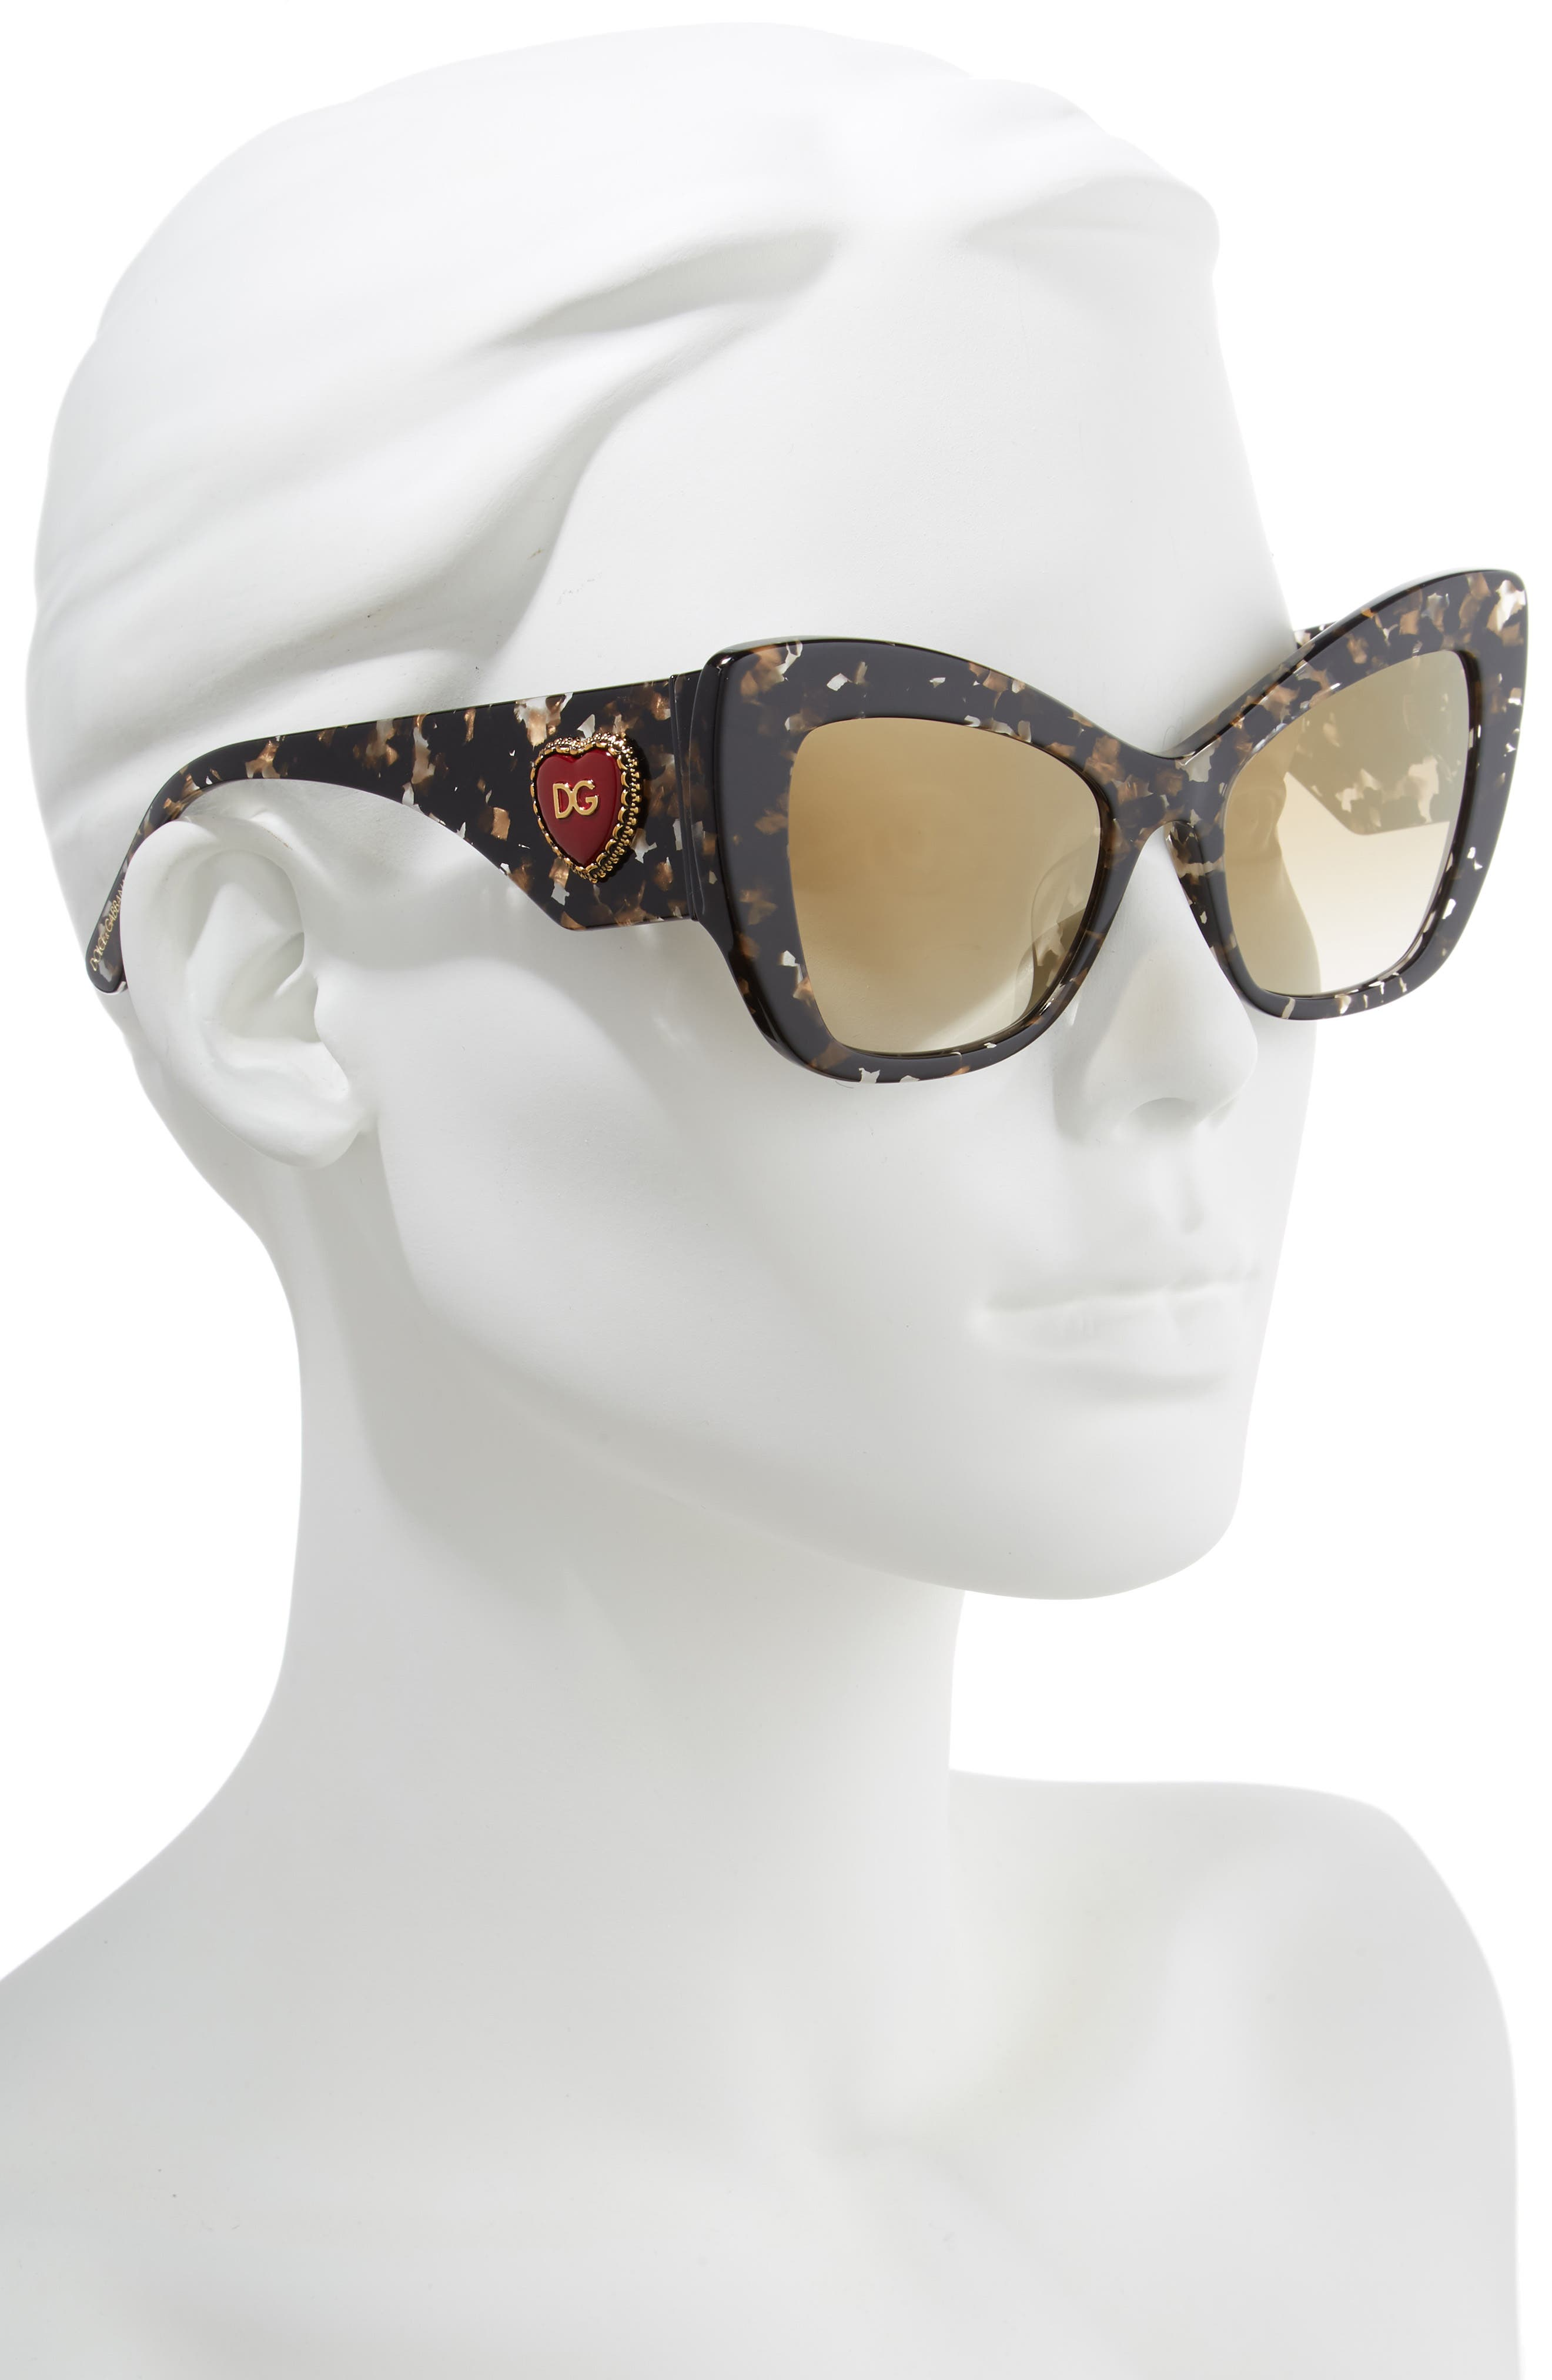 DOLCE&GABBANA,                             Sacred Heart 54mm Gradient Cat Eye Sunglasses,                             Alternate thumbnail 2, color,                             BLACK GOLD GRADIENT MIRROR